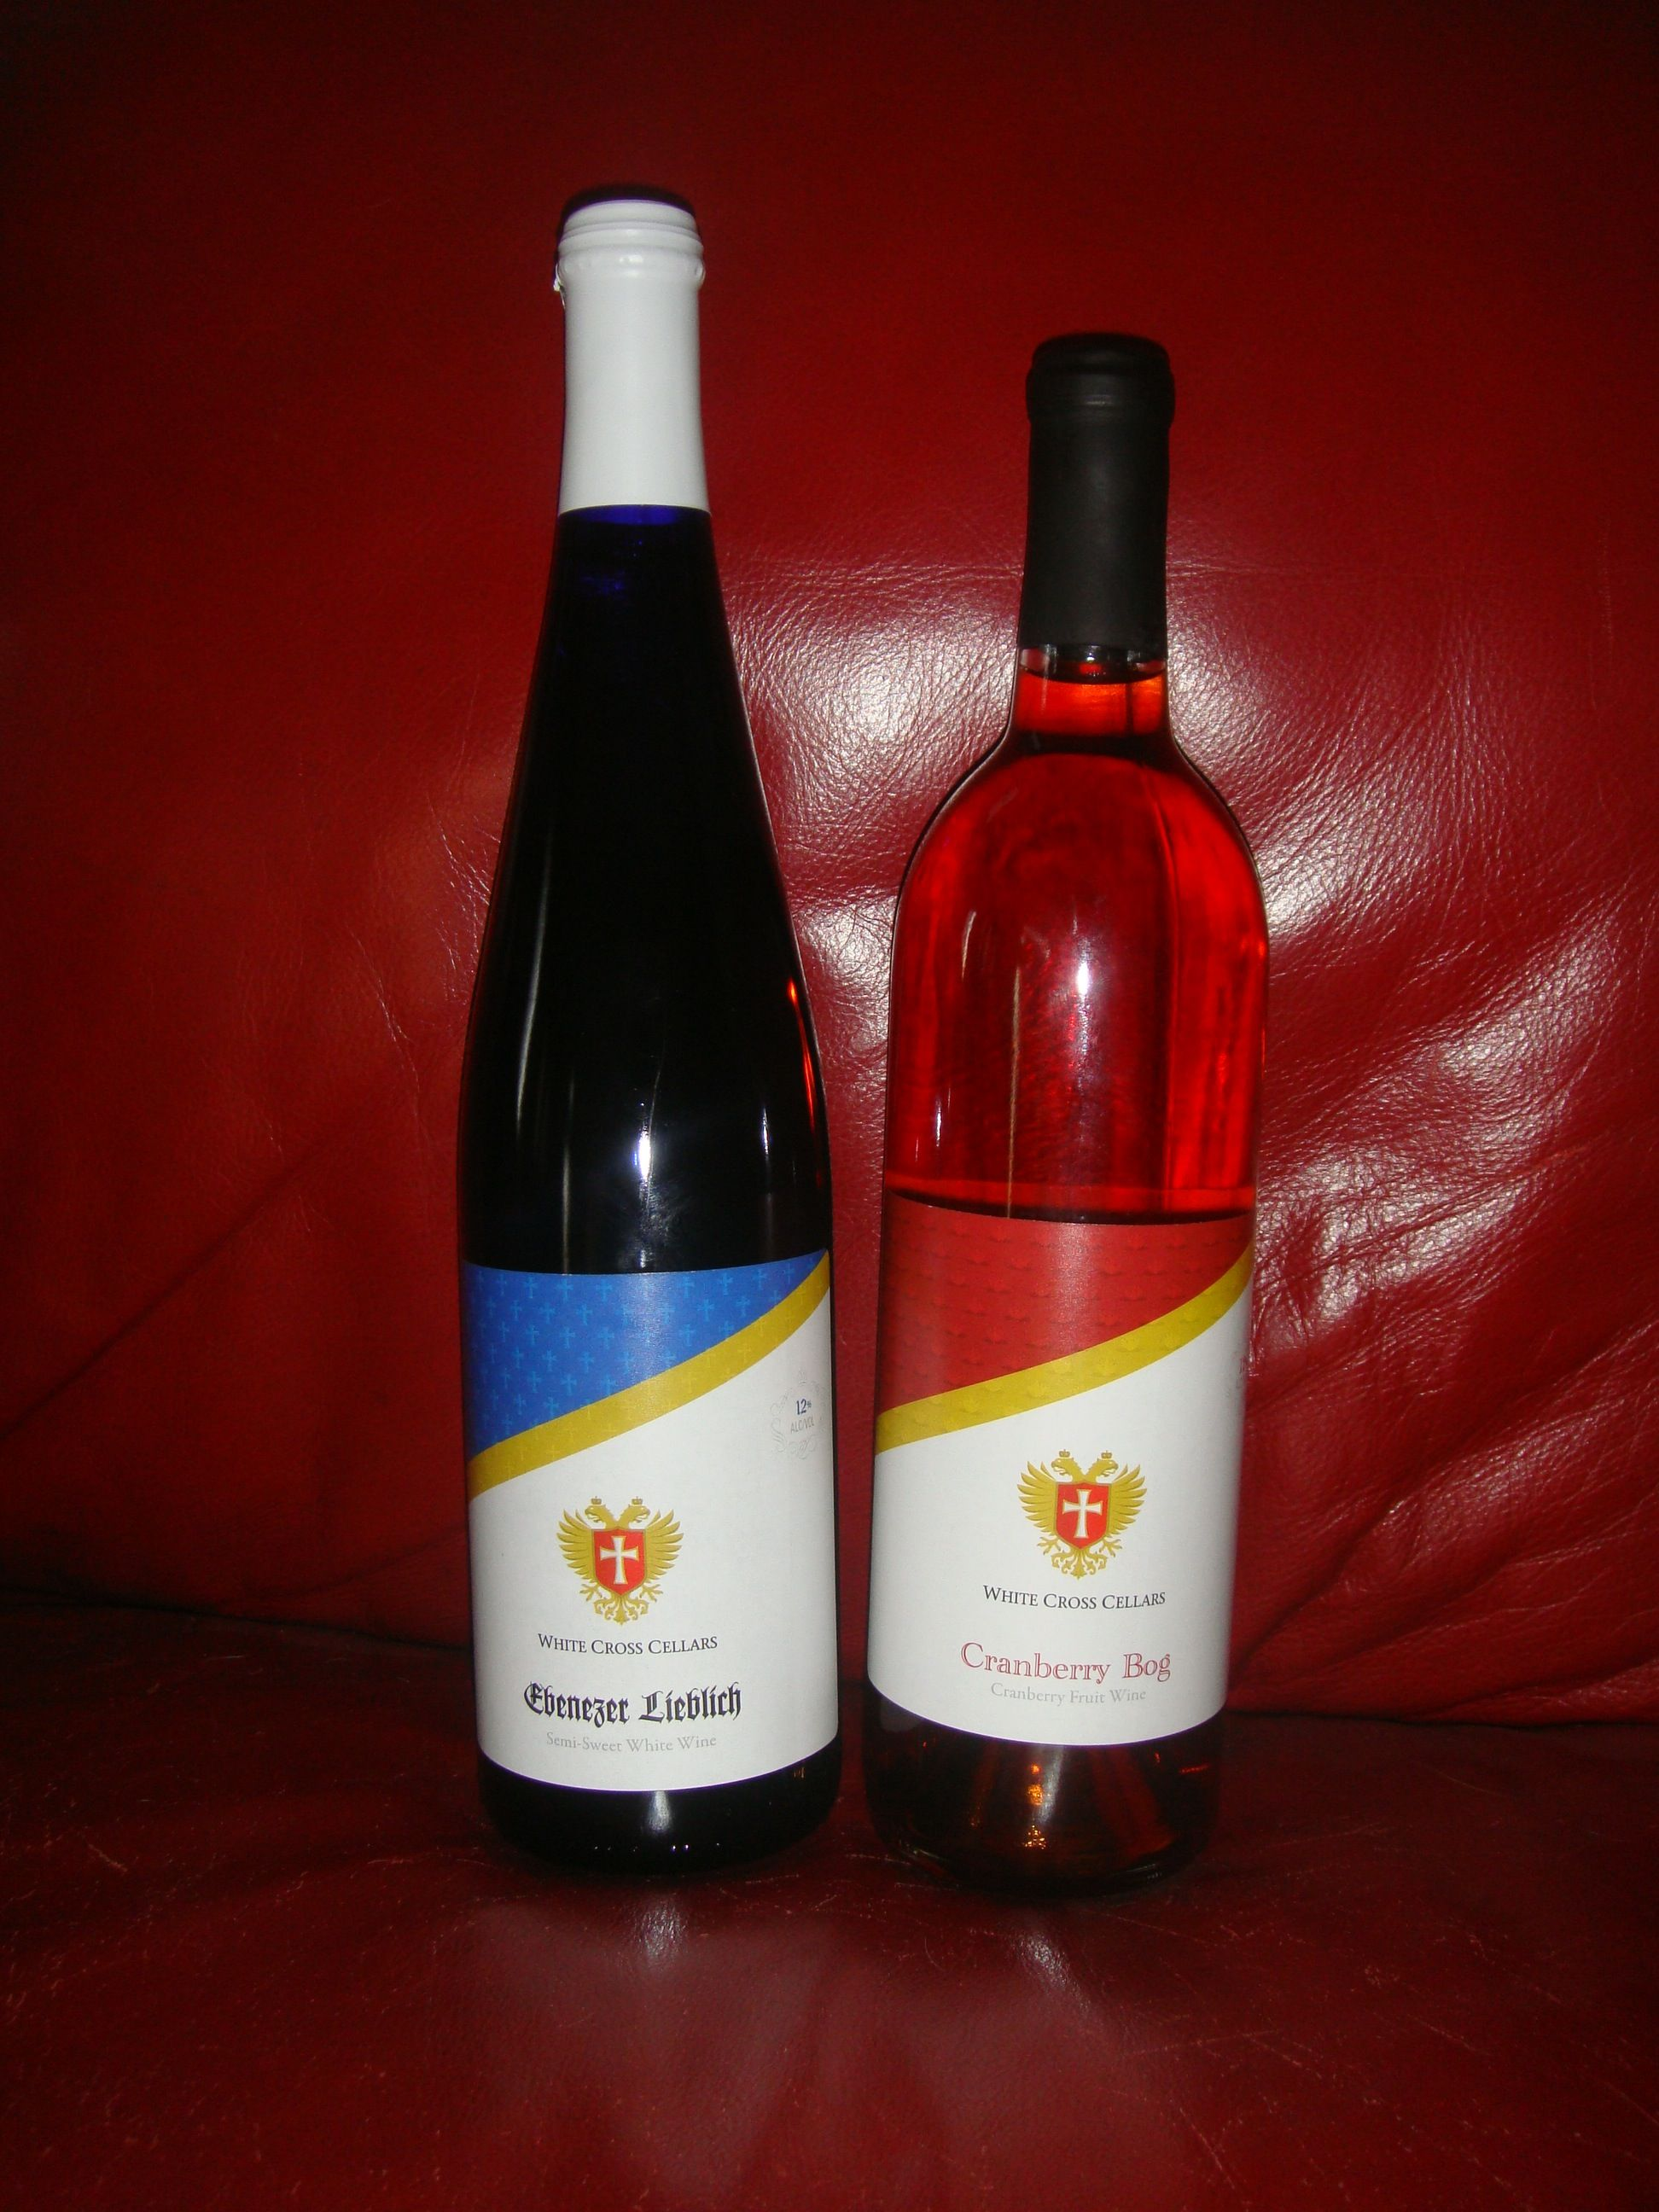 Ebenzer Lieblich Semi Sweet White And Cranberry Bog By The White Cross Cellars In The Amana Colonies Cranberry Bog White Crosses Wine Bottle